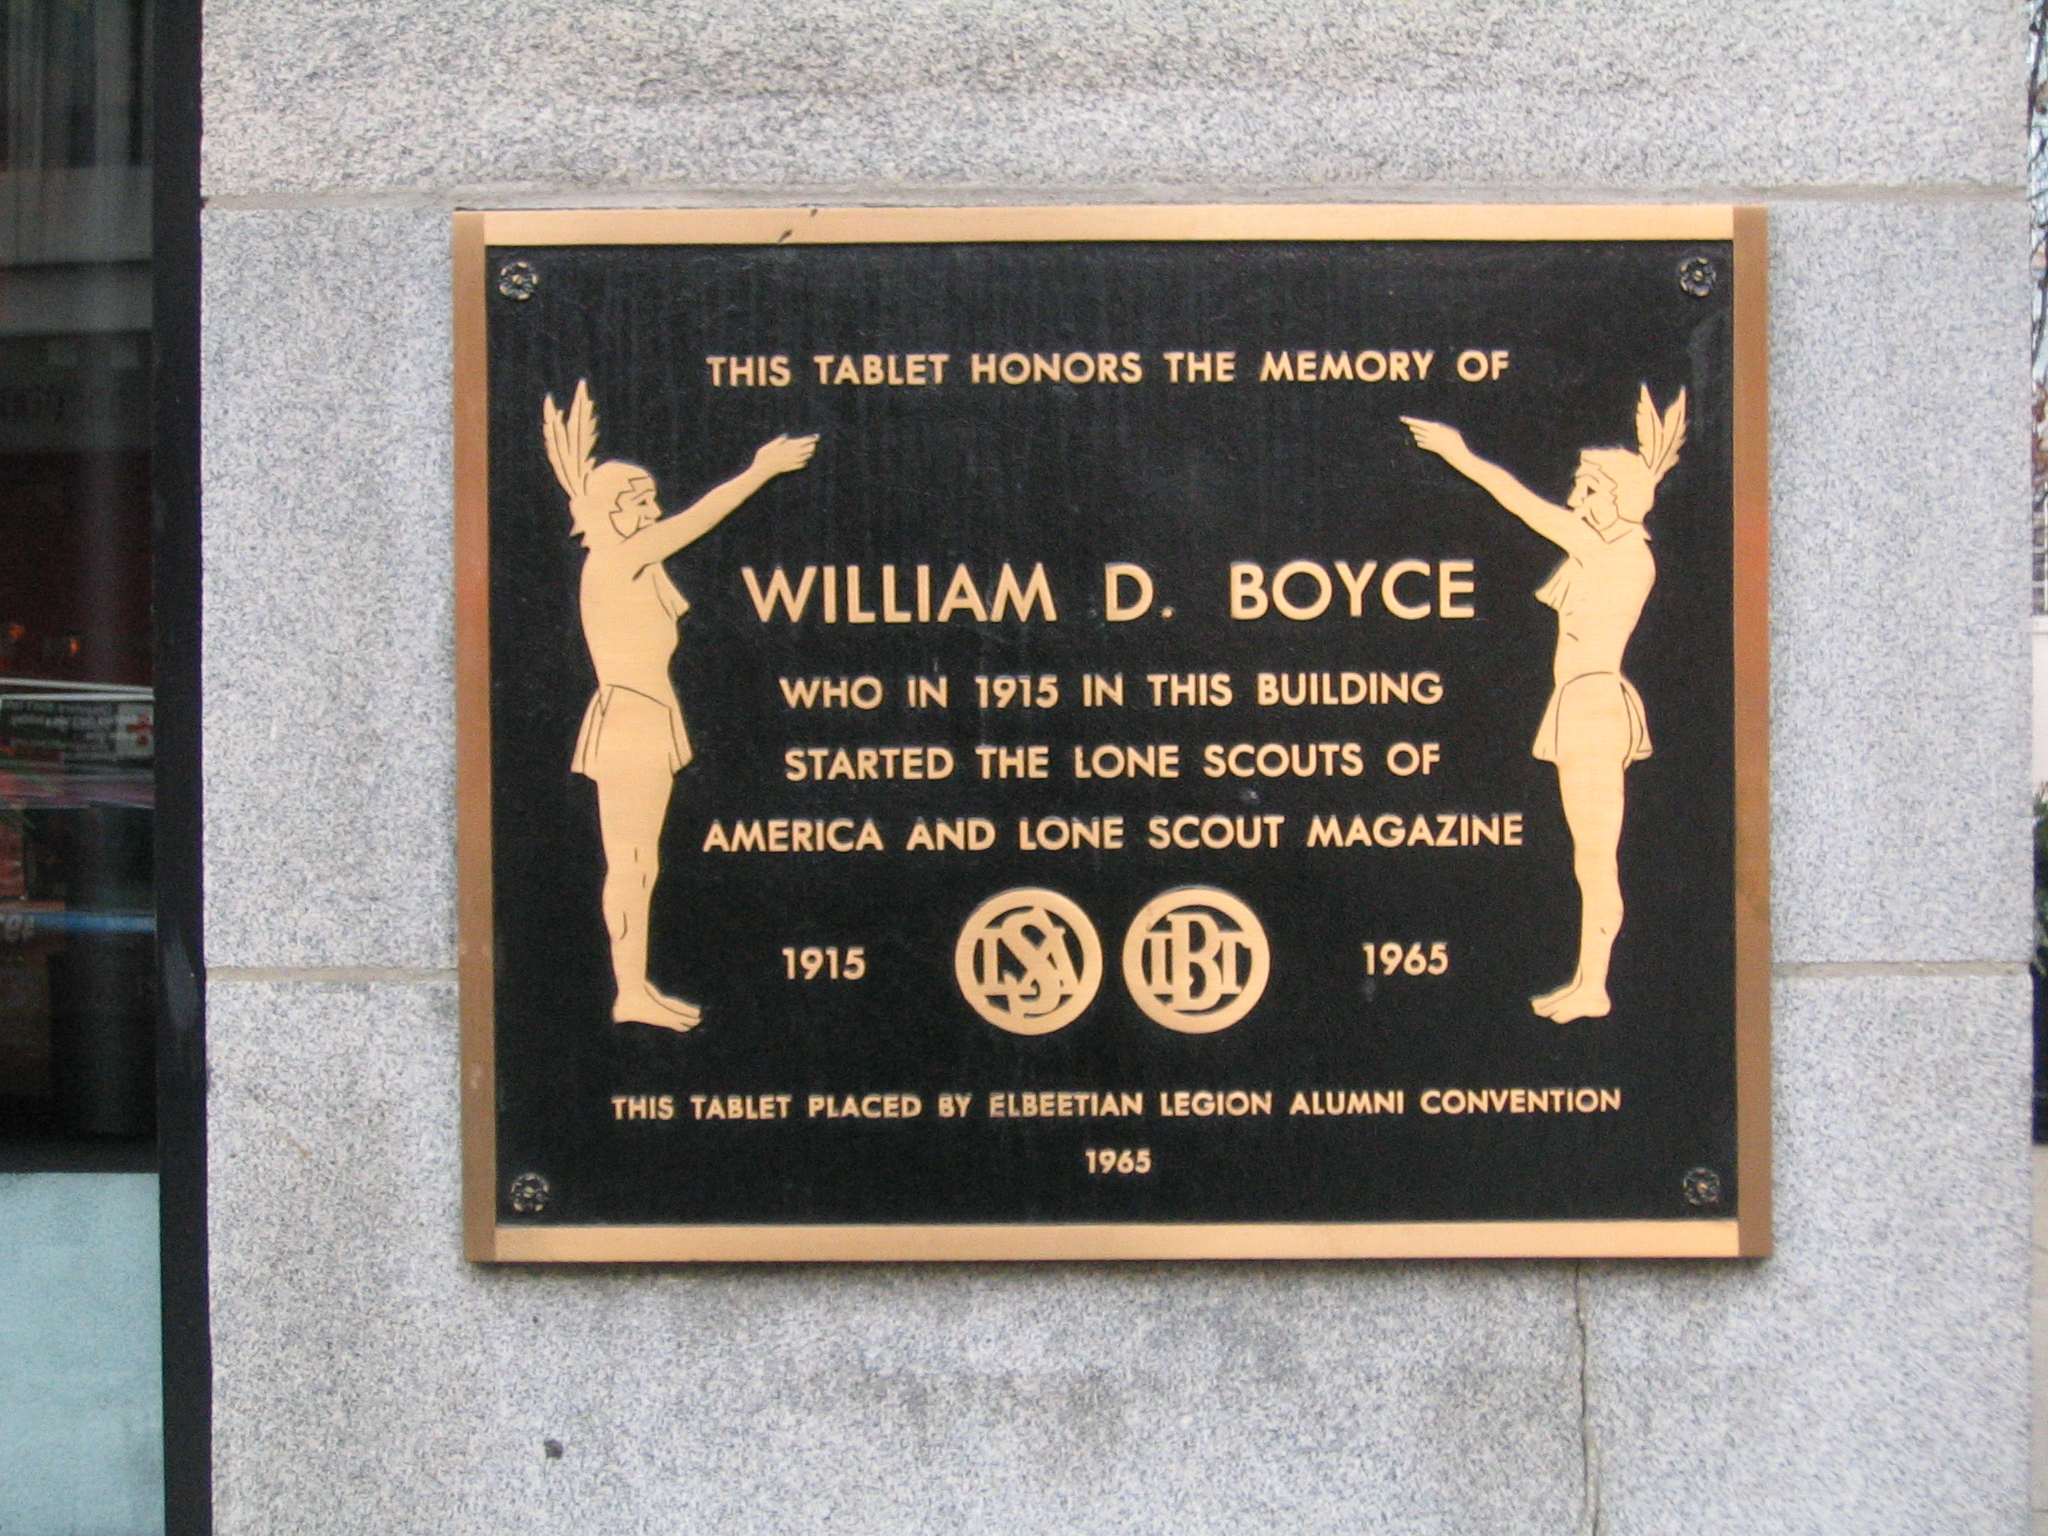 By Sarah from Chicago, Illinois, USA - Boyce building, CC BY 2.0, https://commons.wikimedia.org/w/index.php?curid=5121557